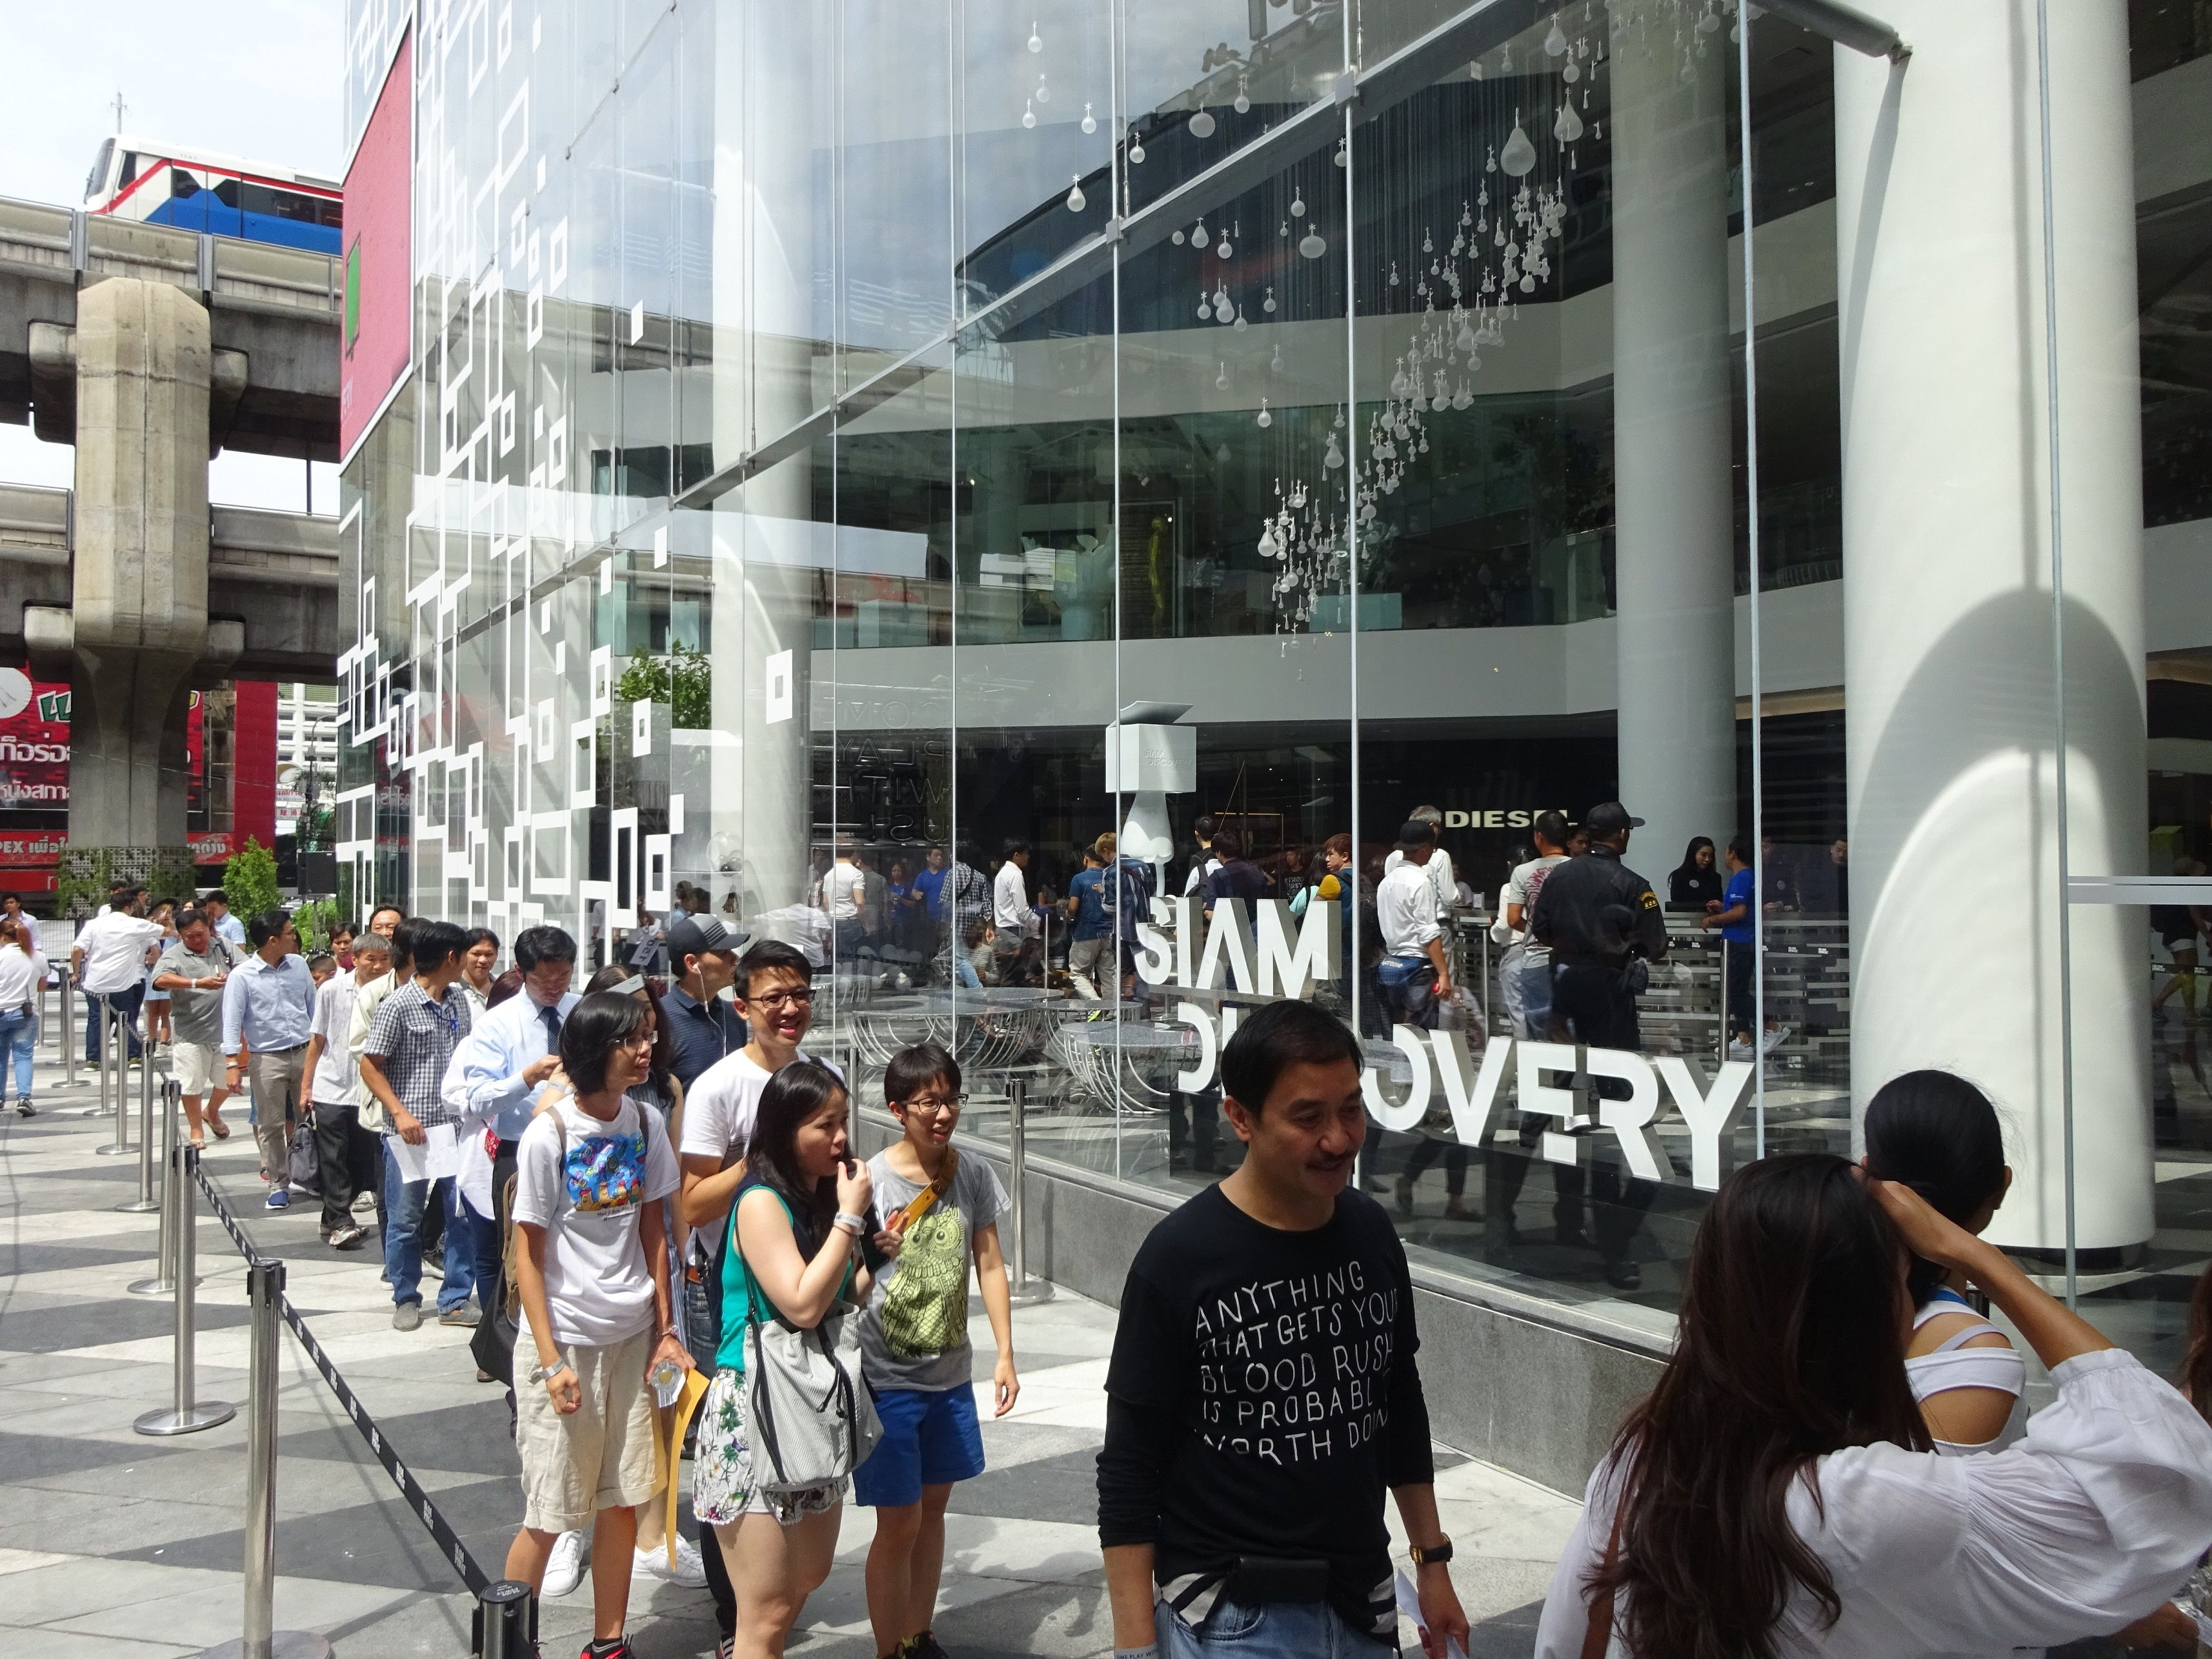 c1cde9151c9f9 Siam Discovery, central Bangkok's first mall opening in a year ...